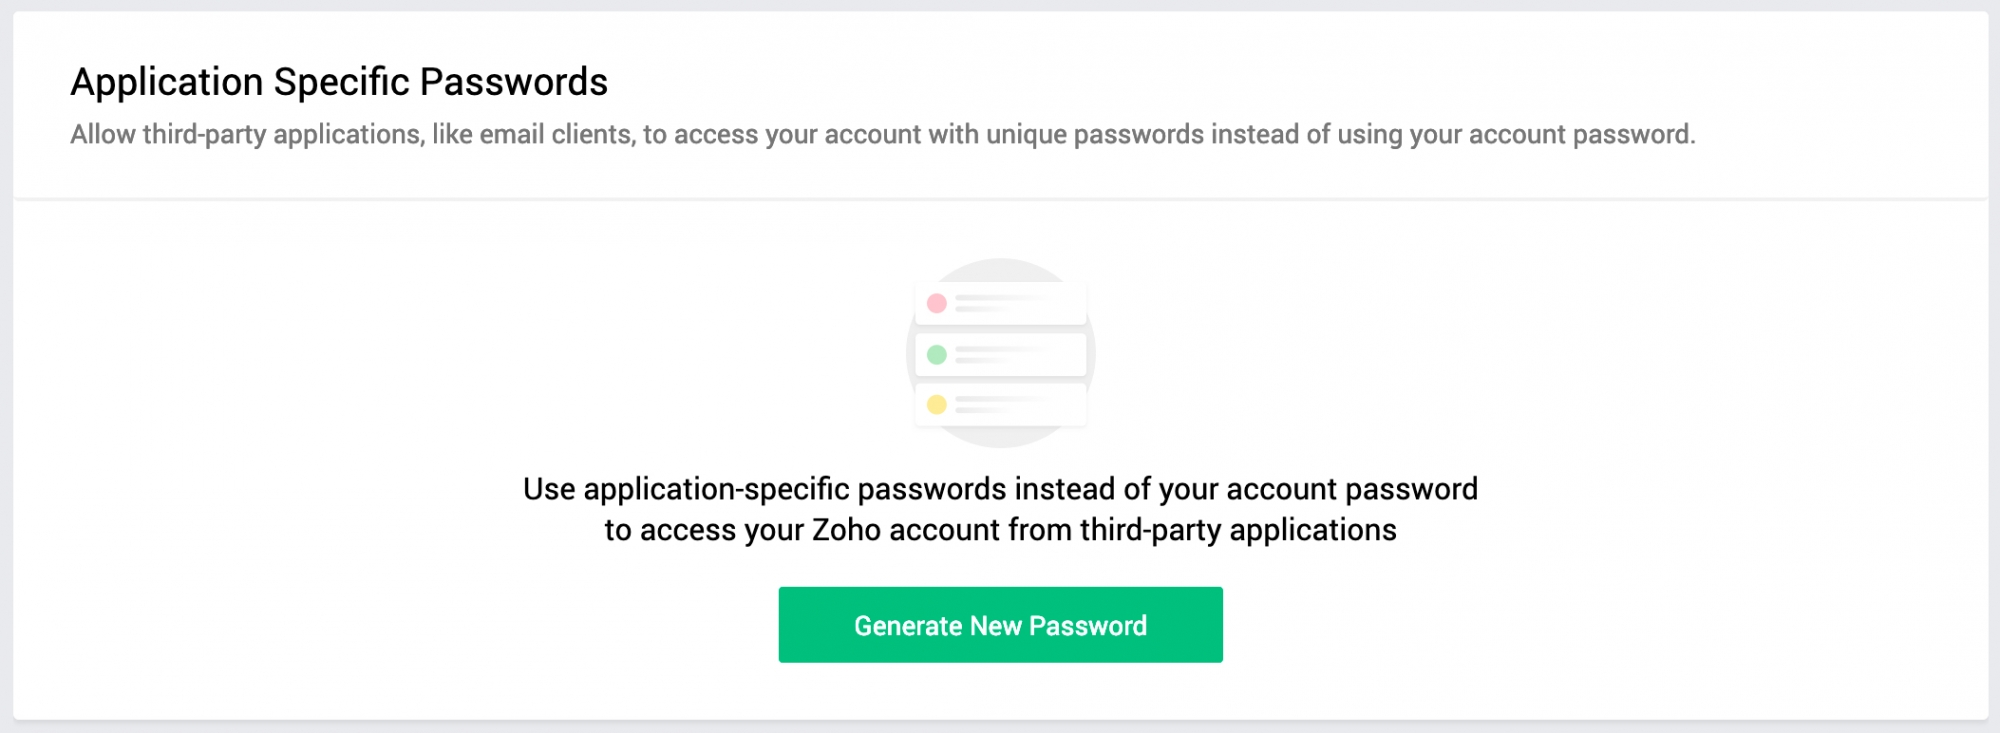 New password generation